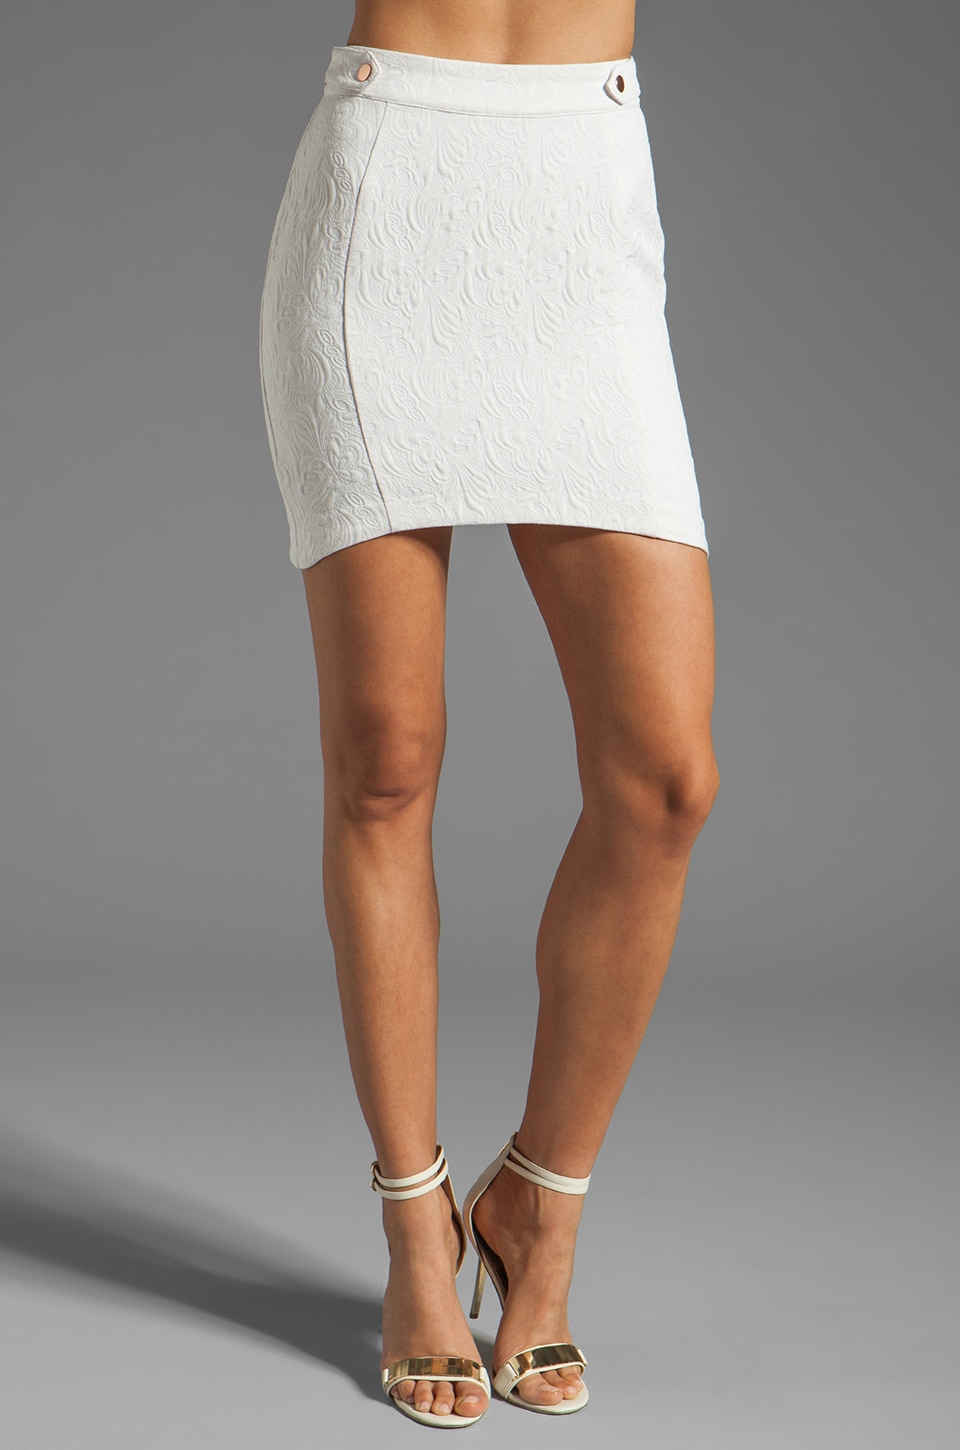 STYLESTALKER Time Travel Skirt in Milk